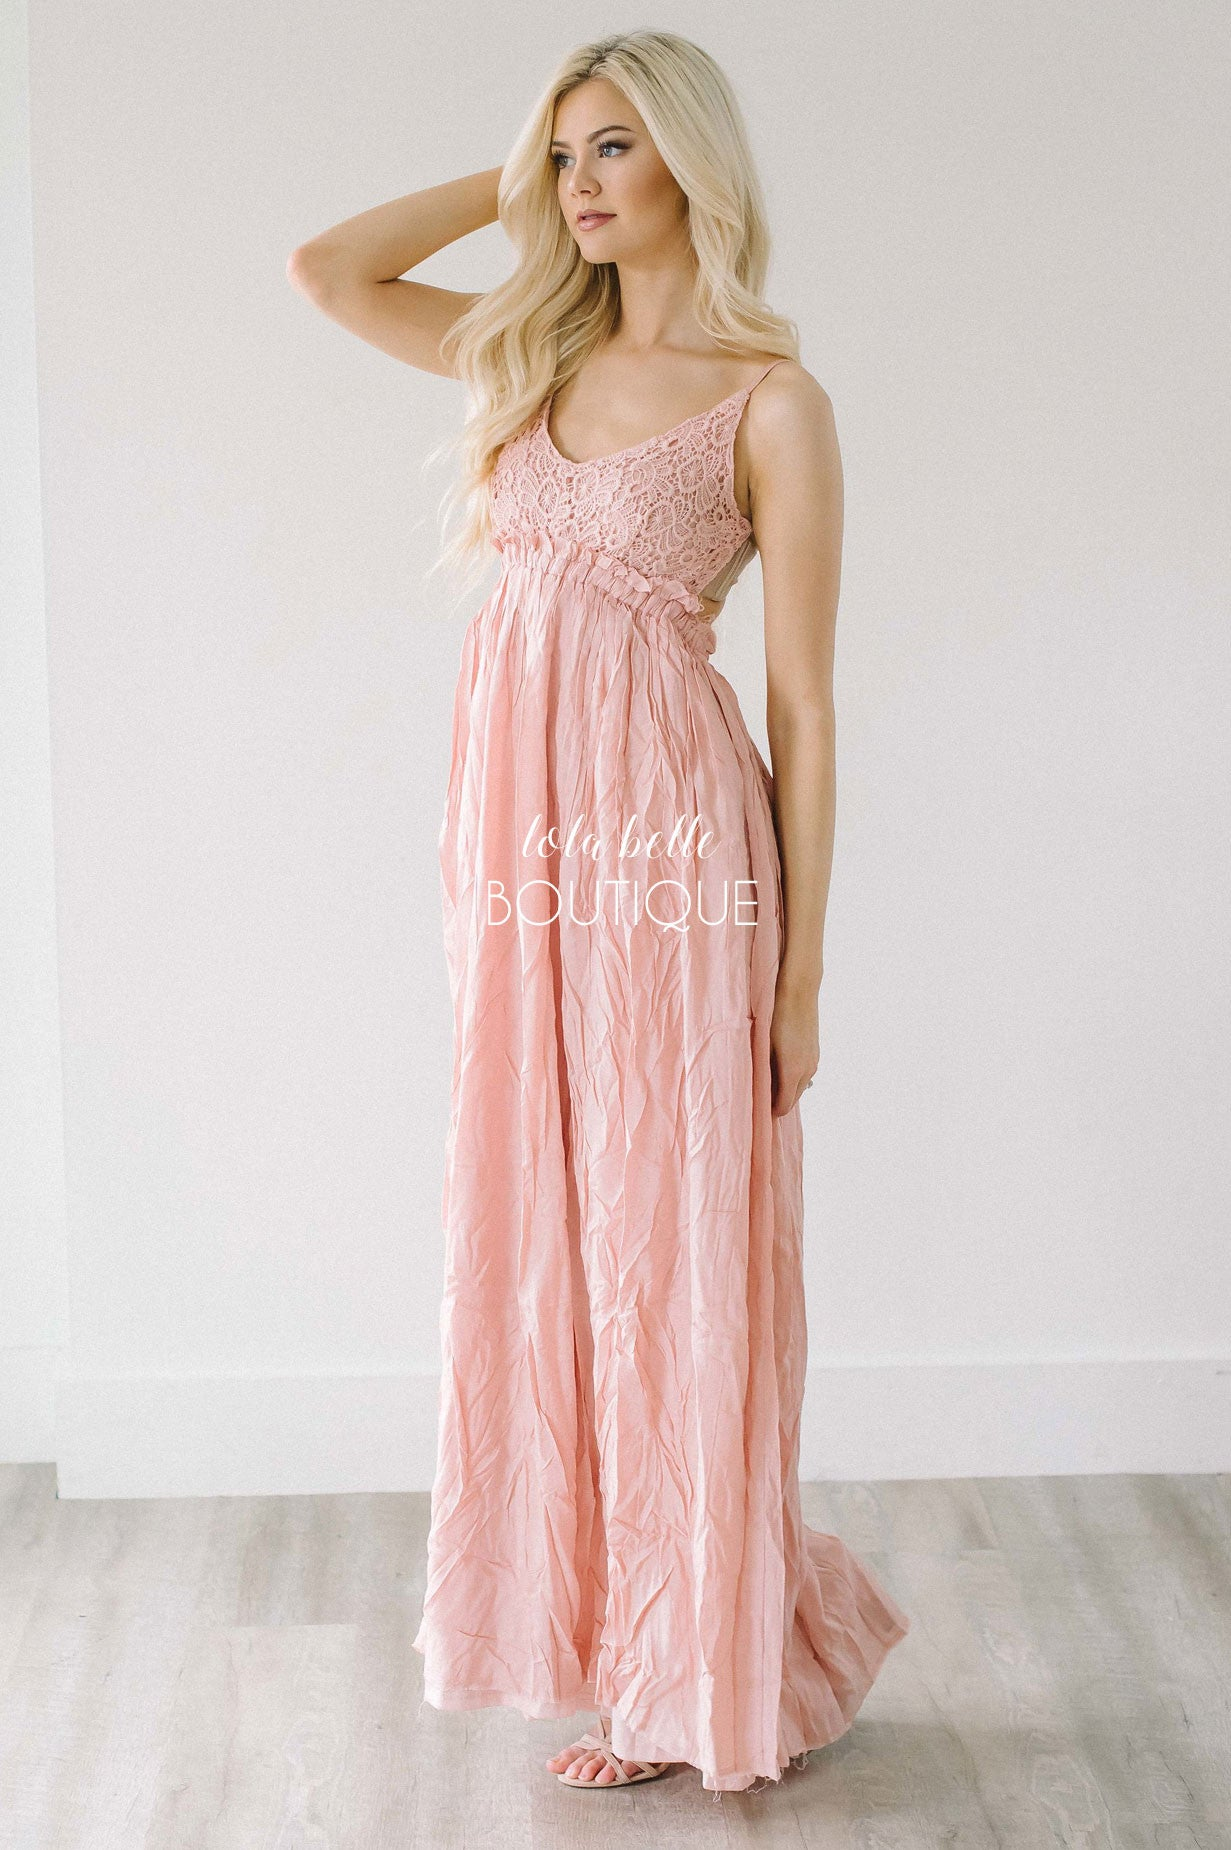 Spring Princess Full Length Dress in Dusty Pink